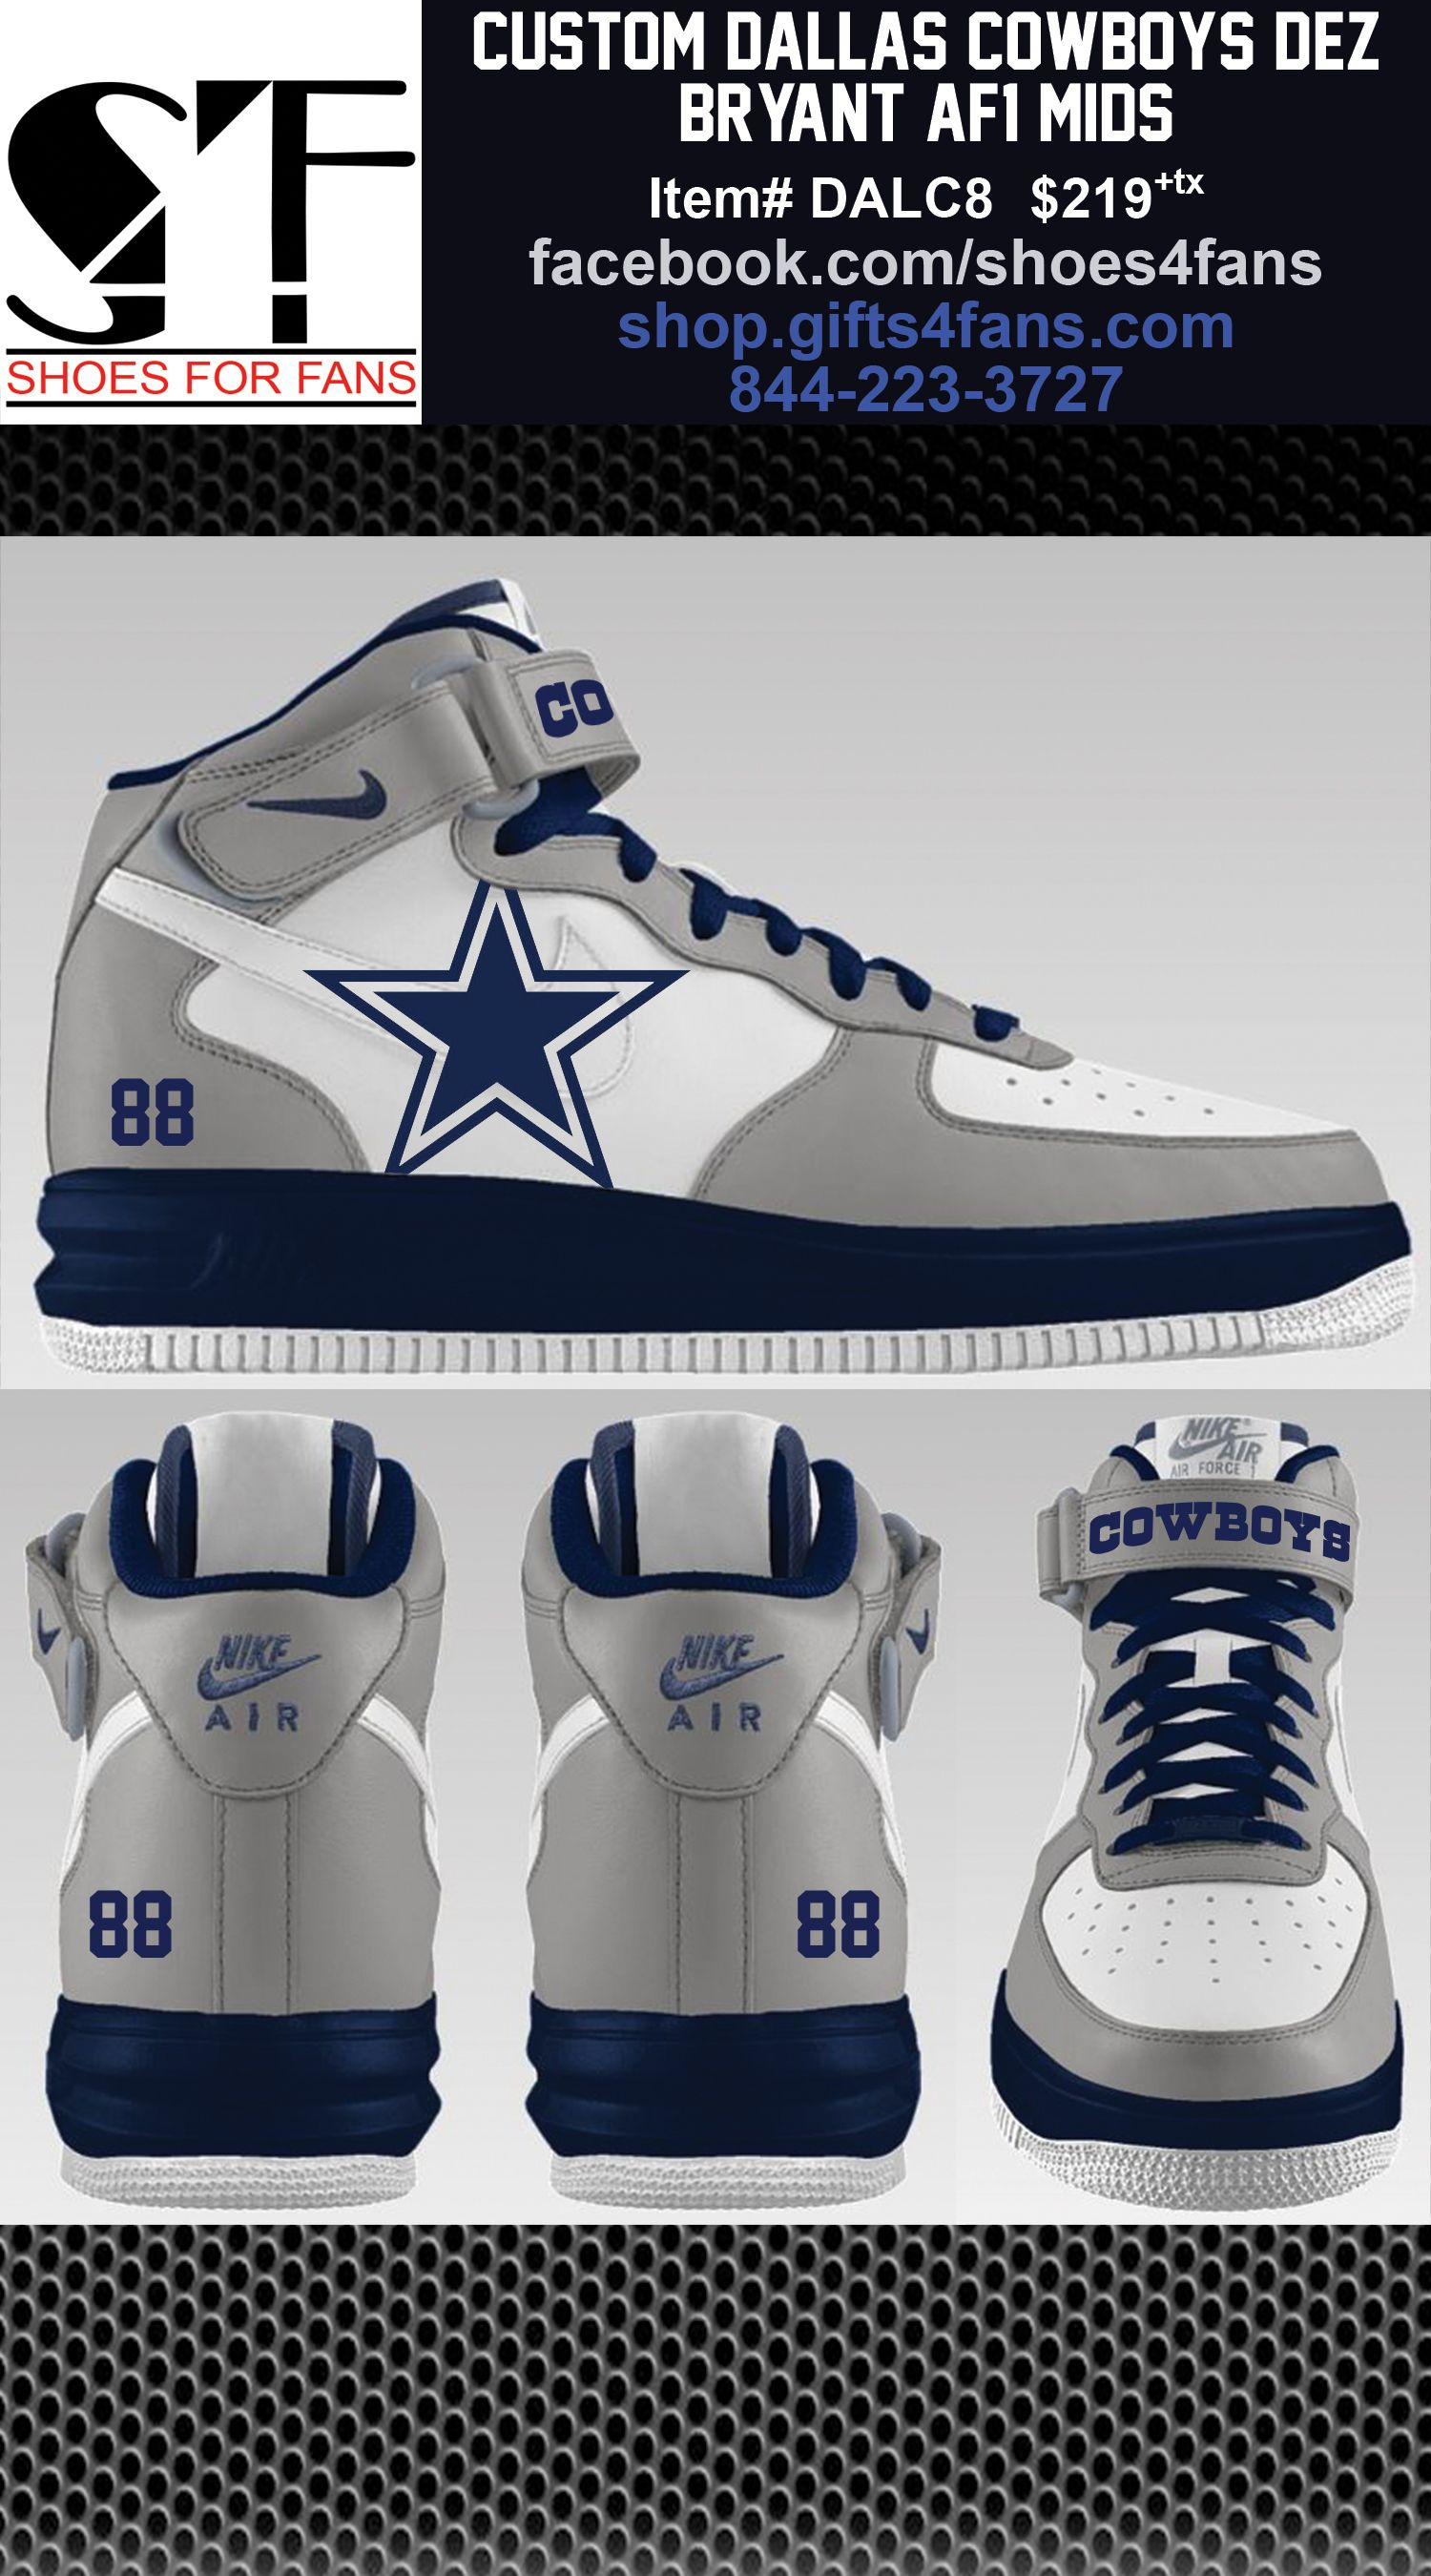 09d1ab358 Dallas Cowboys Nike Air Force One Dez Bryant Edition. order at  shop.gifts4fans.com